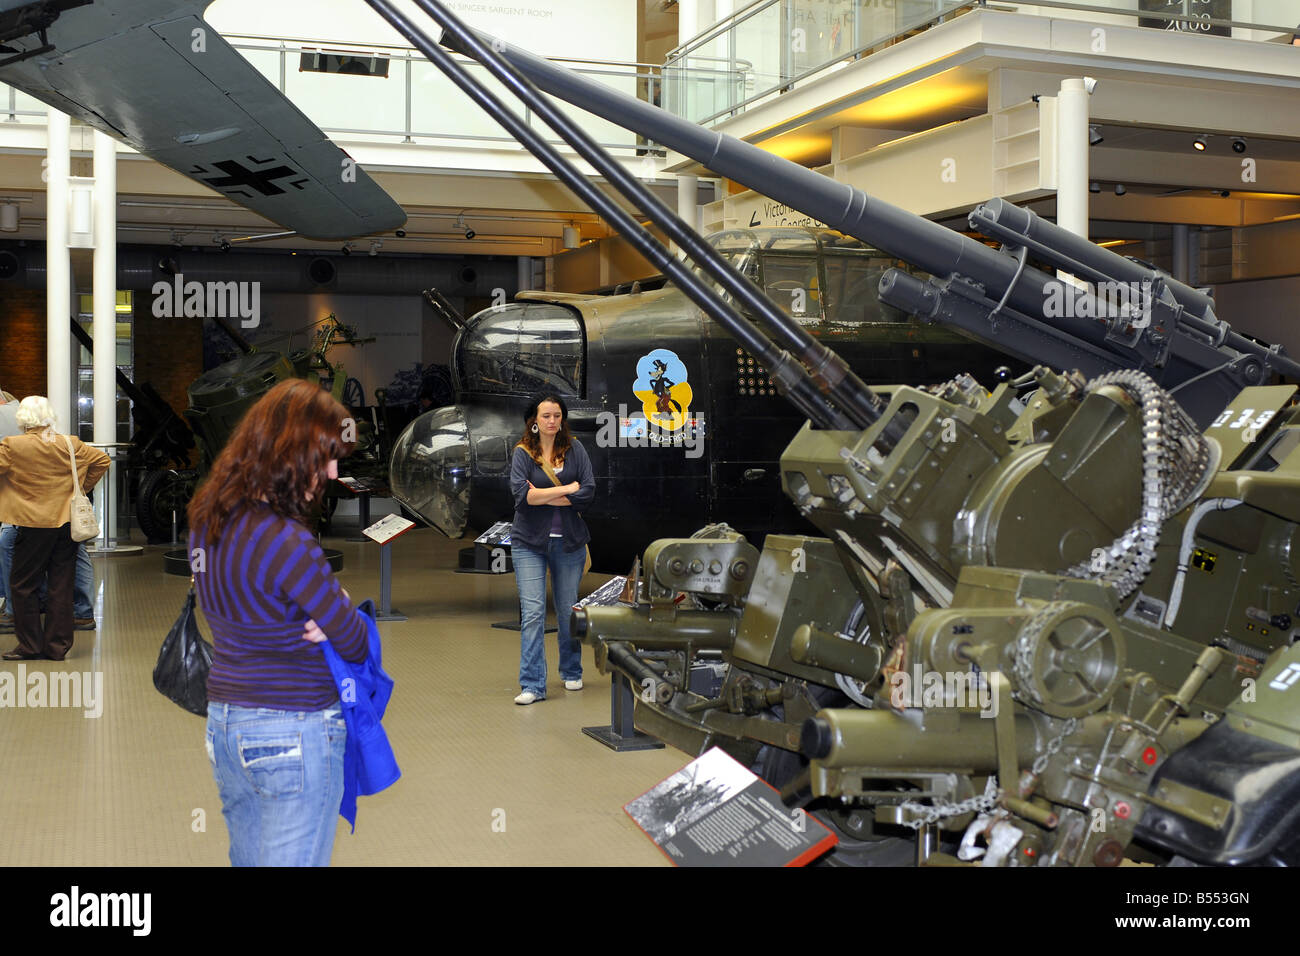 Display of military memorabilia at the Imperial War Museum London - Stock Image